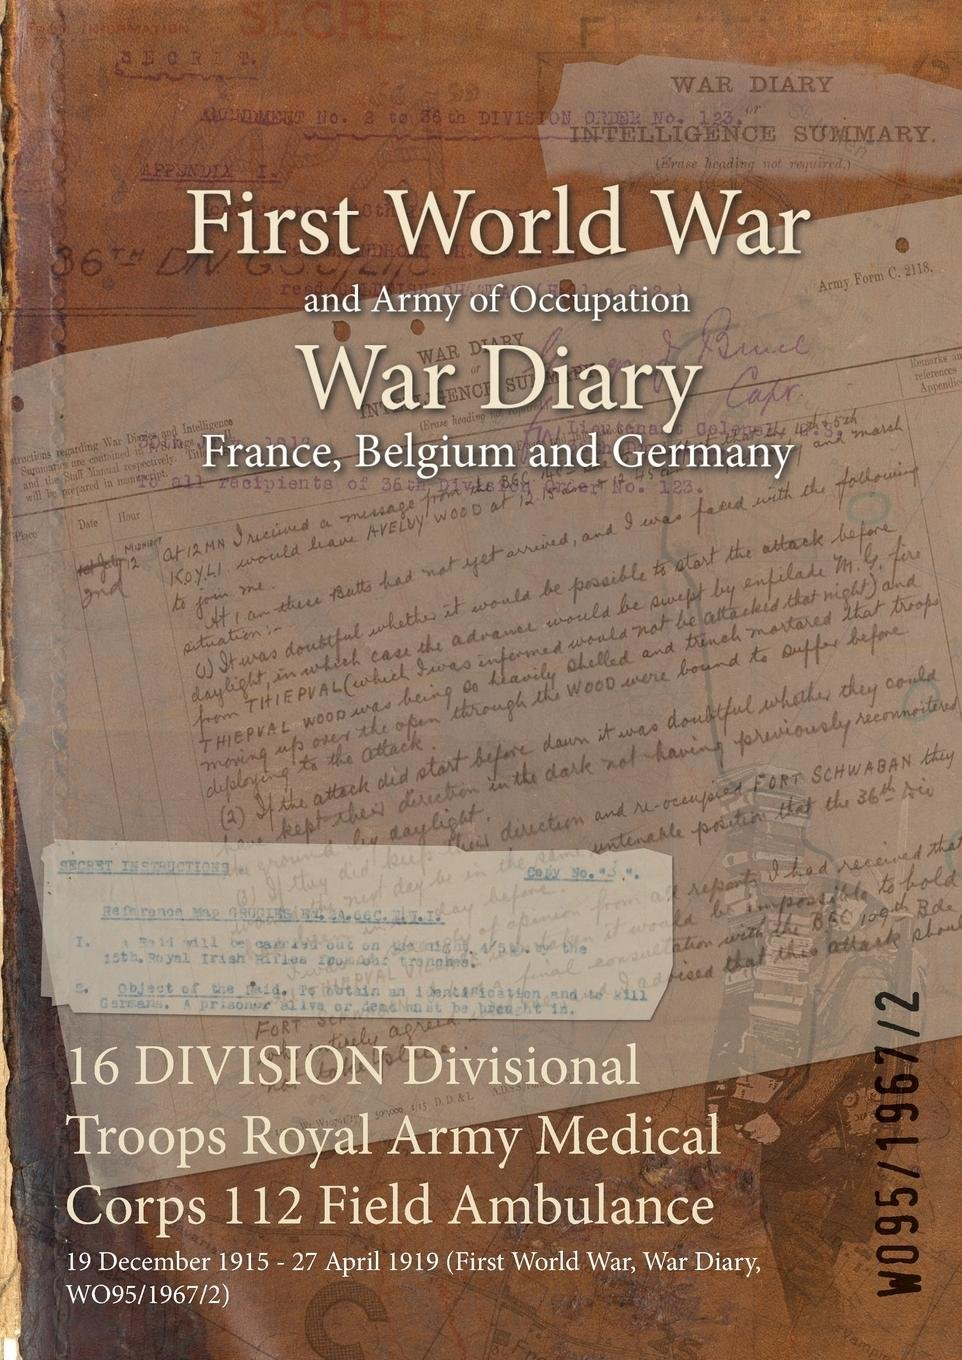 16 Division Divisional Troops Royal Army Medical Corps 112 Field Ambulance: 19 December 1915 - 27 April 1919 (First World War, War Diary, Wo95/1967/2) ebook